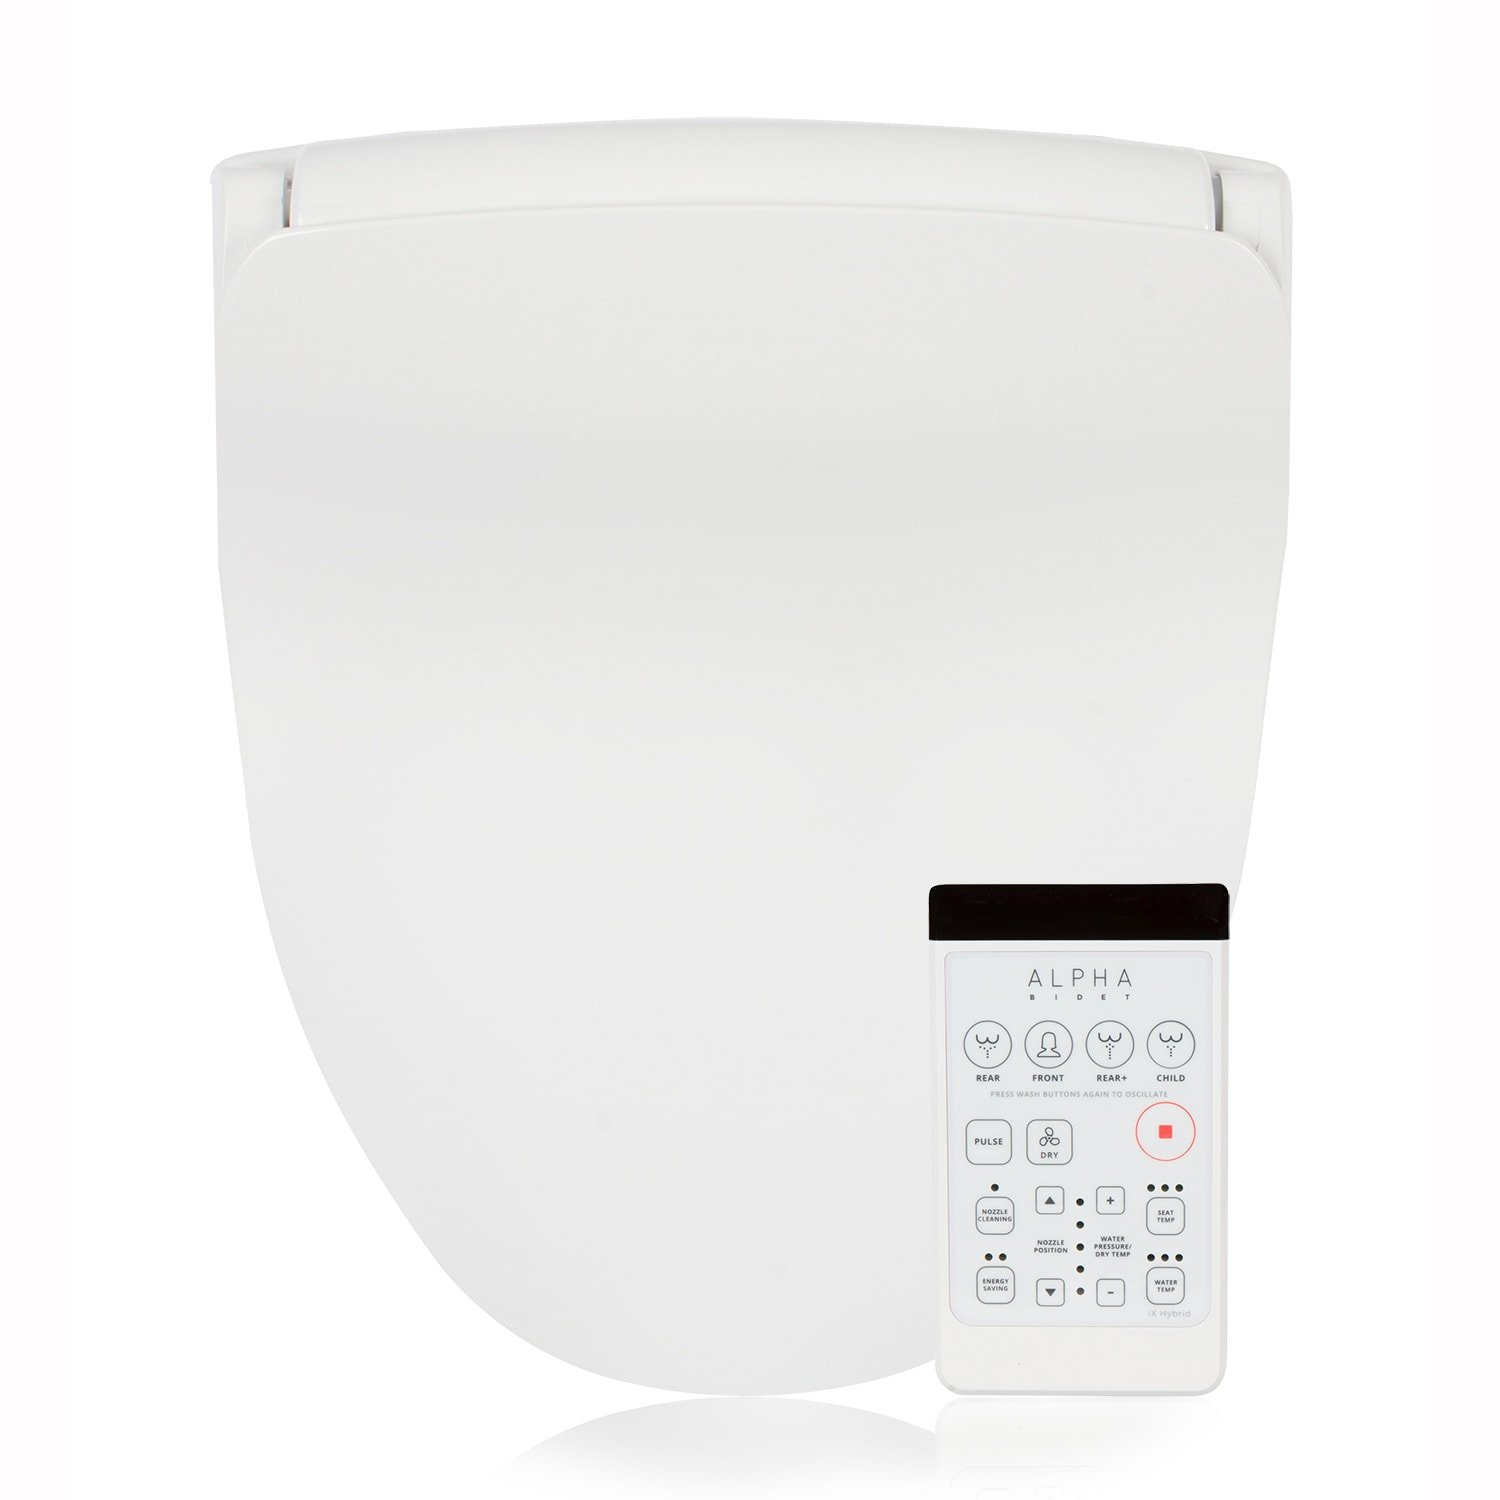 Alpha Bidet iX Hybrid Bidet Toilet Seat in Elongated White | Endless Warm Water | Stainless Steel Nozzle | 4 Wash Functions | LED Nightlight | Warm Air Dryer | Wireless Remote | Oscillation and Pulse